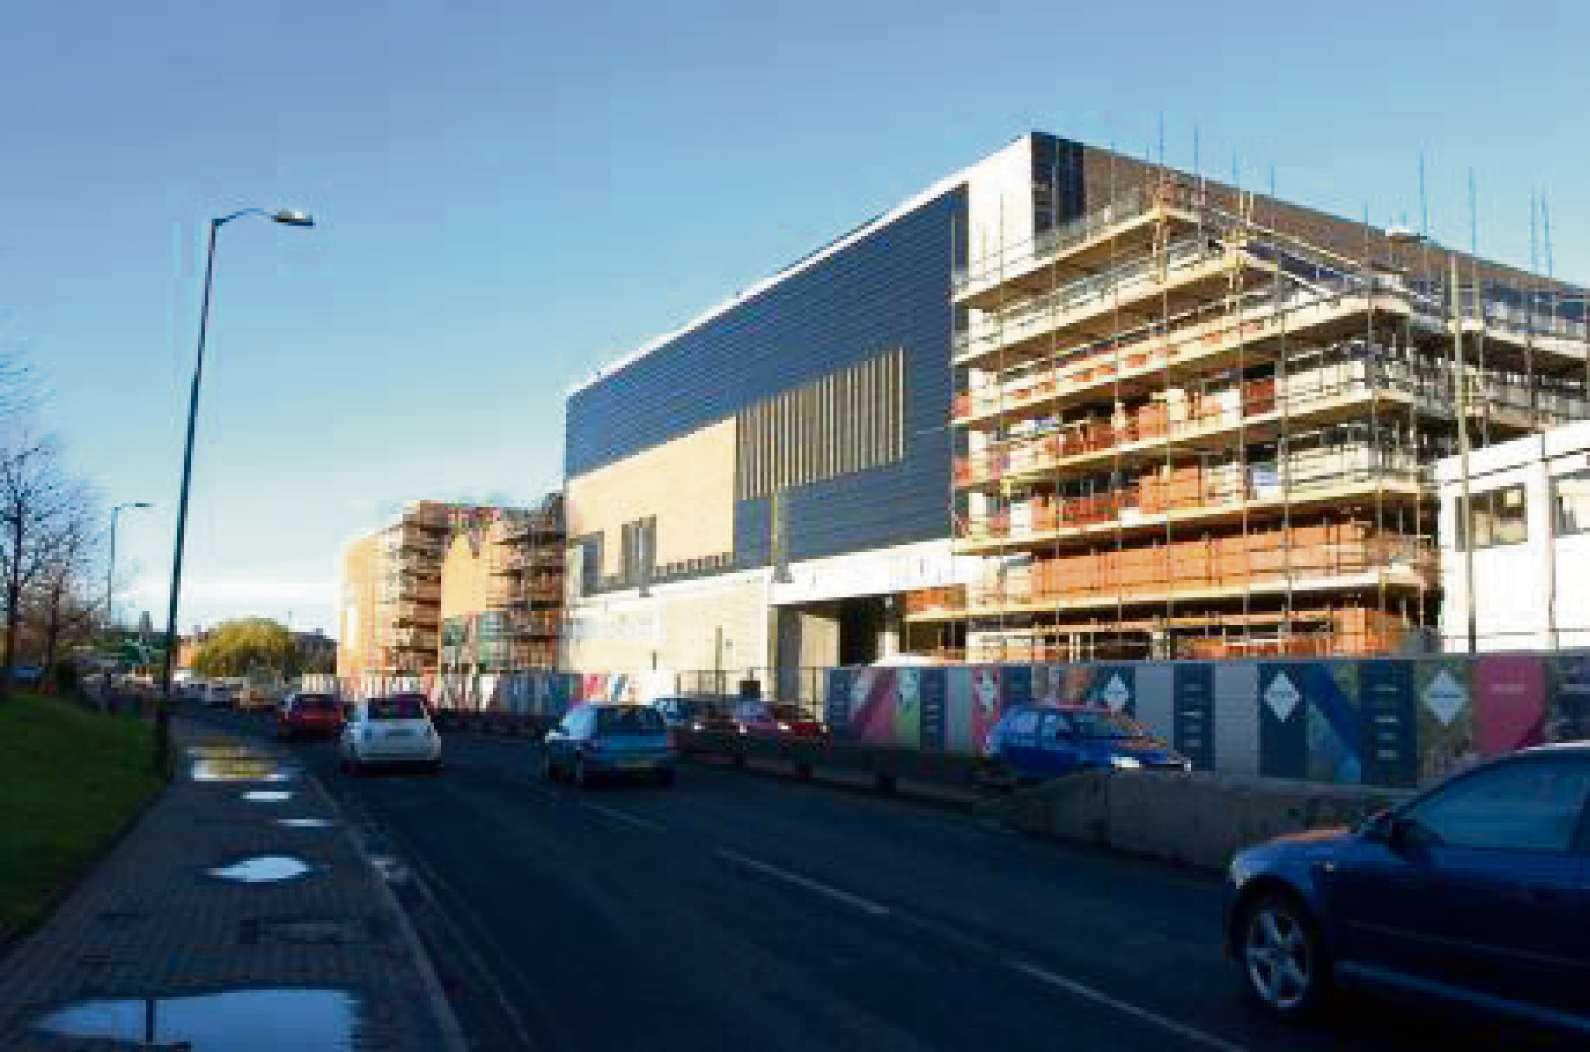 Debenhams, on the the Old Market development, is set to open it's doors in April.